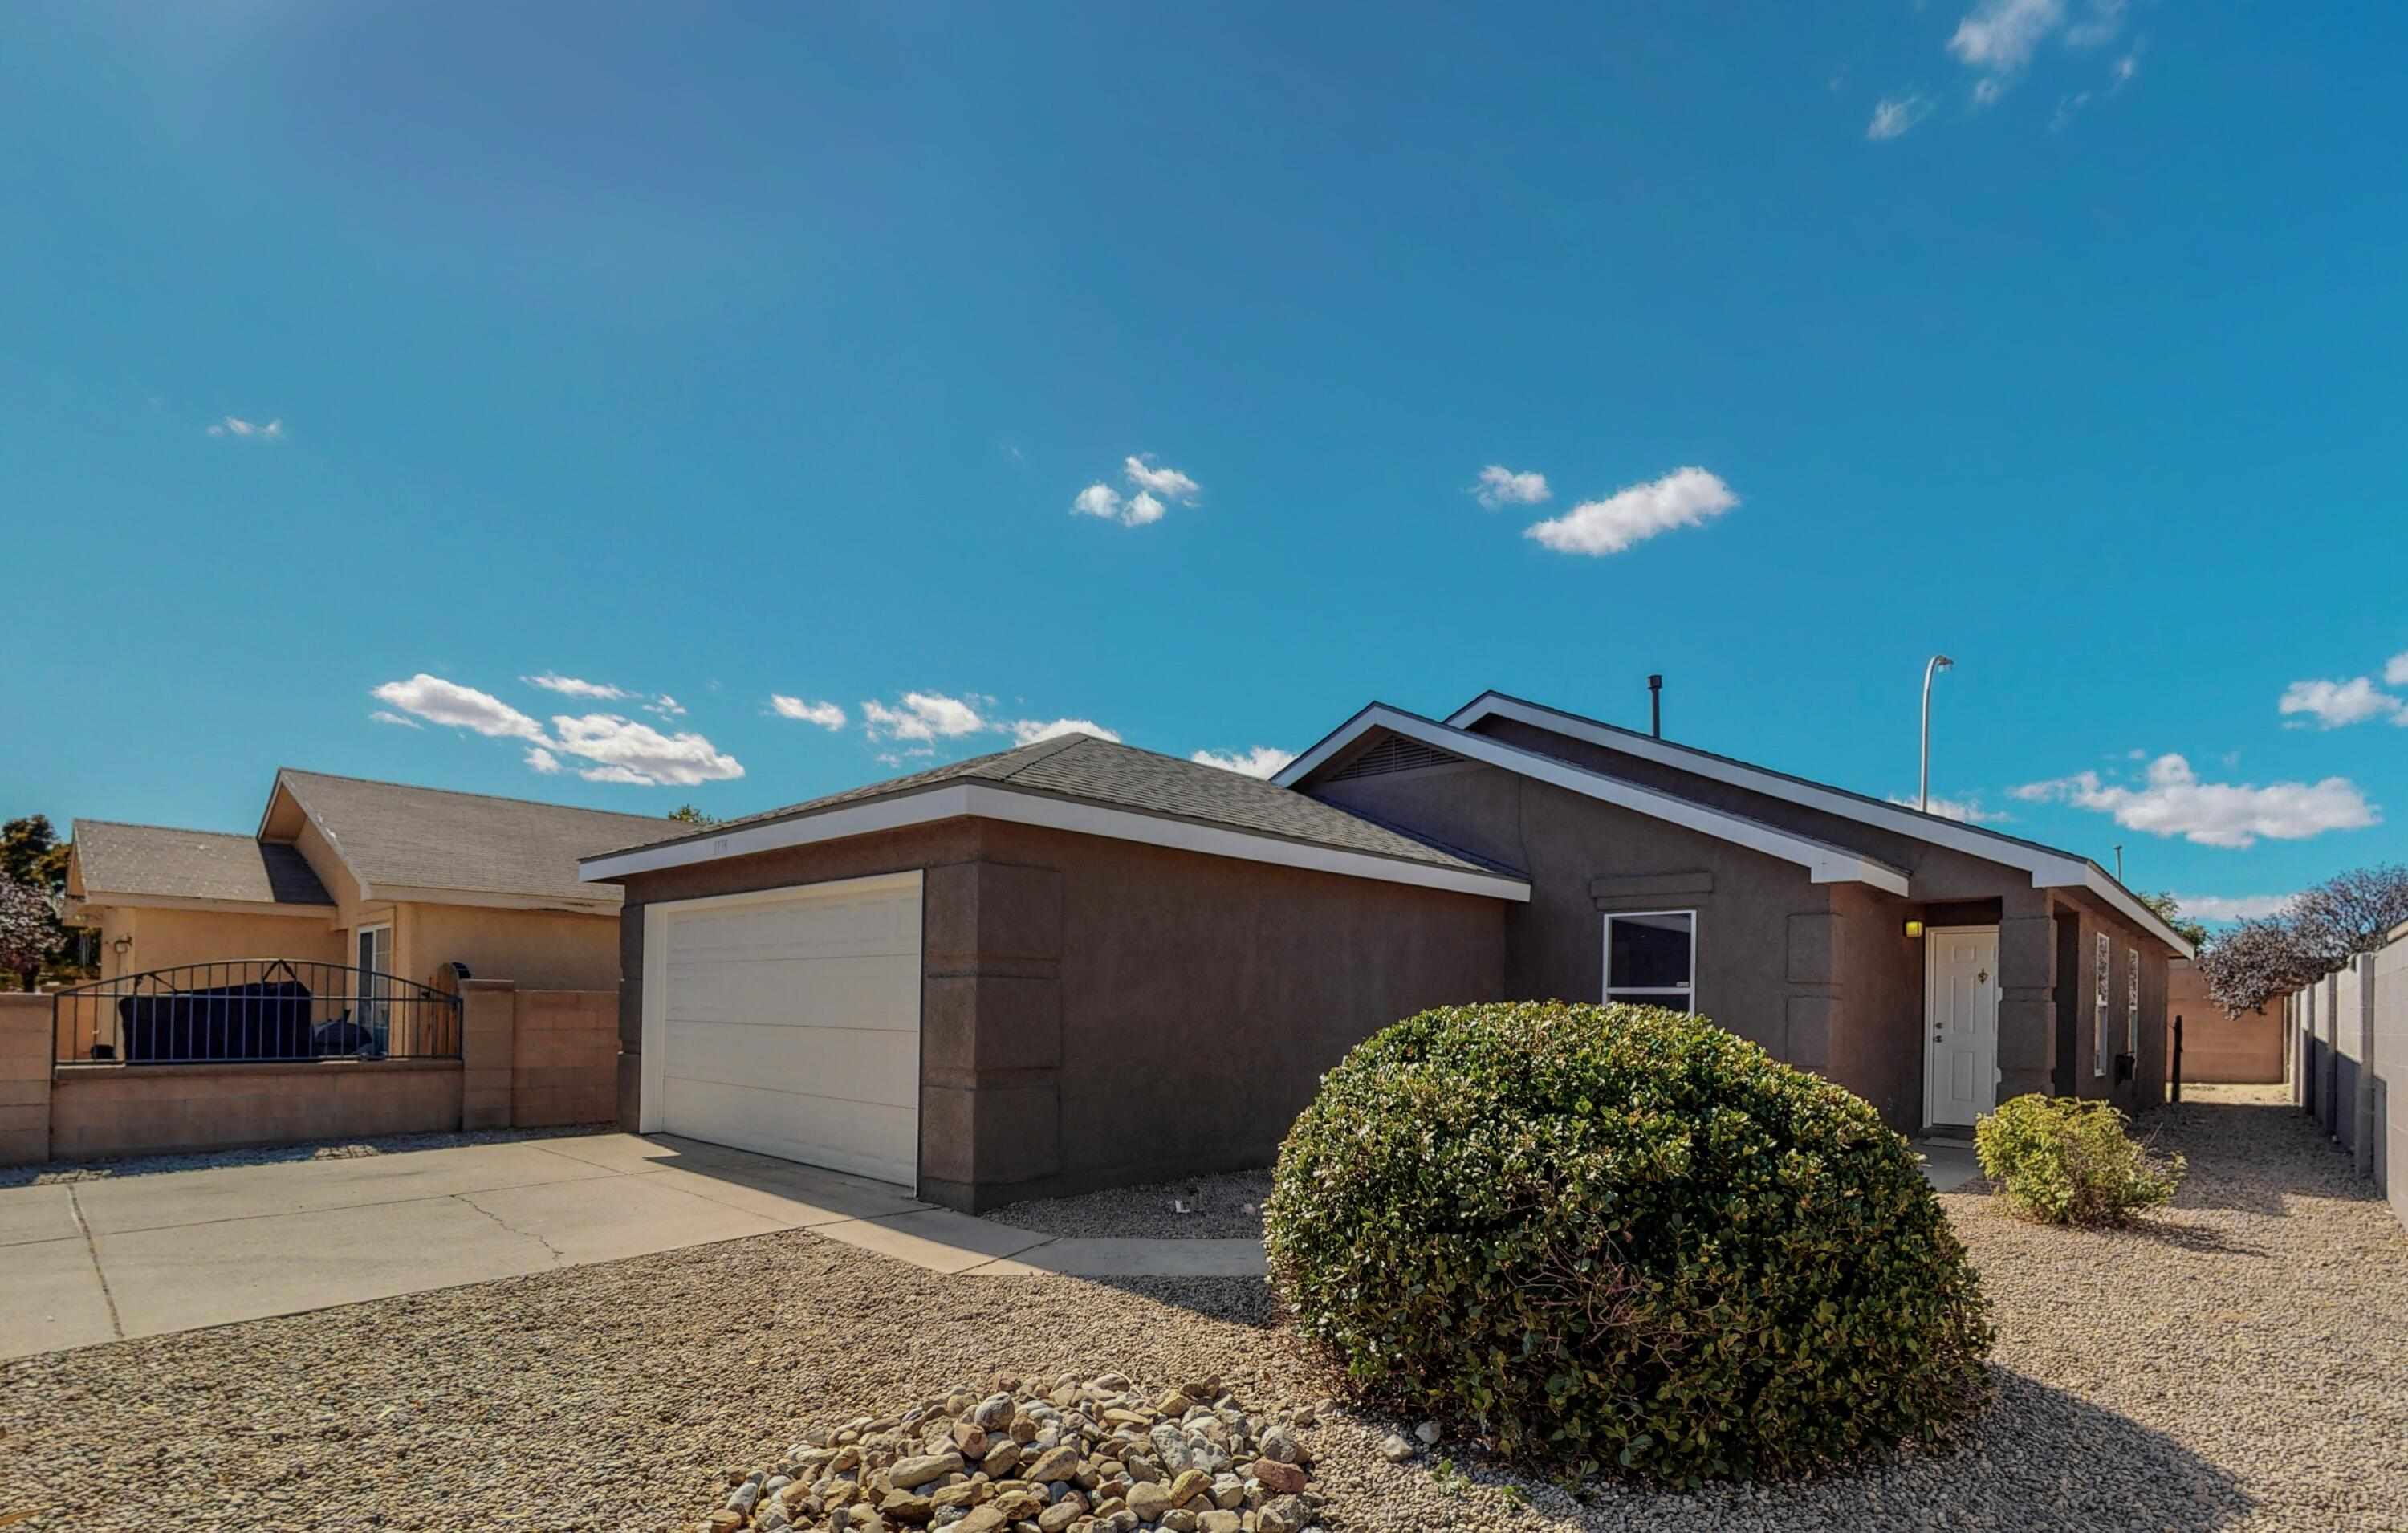 Welcome to Albuquerque's' Desert Springs. Your new home is appointed in a way that includes everything you could ever want! This Location is convenient to the interstate Amazon and several shopping opportunities. This light and bright spacious floor plan will not leave you disappointed. Your new home is situated with a large living room, an open concept, all the while an abundance of natural lighting pours into your eat-in Kitchen. The kitchen adorns a freshly face lifted painted cabinets, stainless-steel appliances, brand new granite countertops, and new plumbing fixtures. The yard is just big enough to make an oasis but not so large that it takes all your time to maintain. Evaporative air, vinyl windows, and updated bathrooms round out some of the recent improvements! Don't miss out!